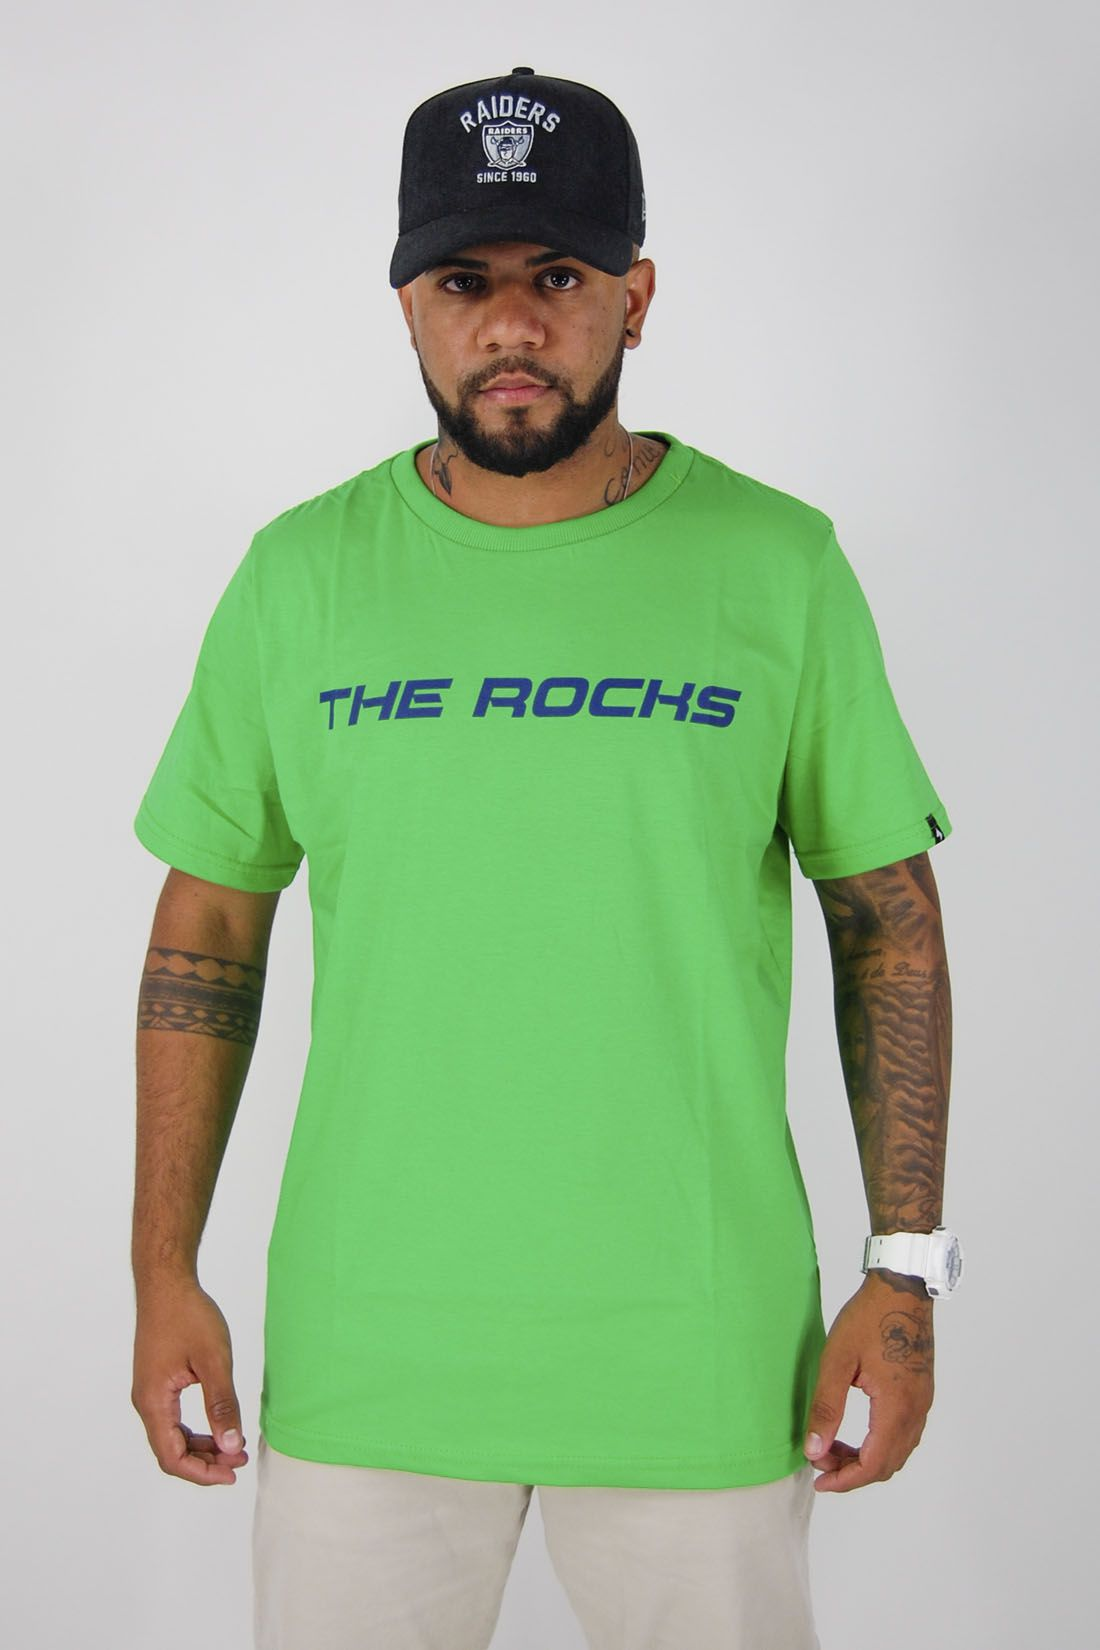 Camiseta Neon Rochs The Rocks